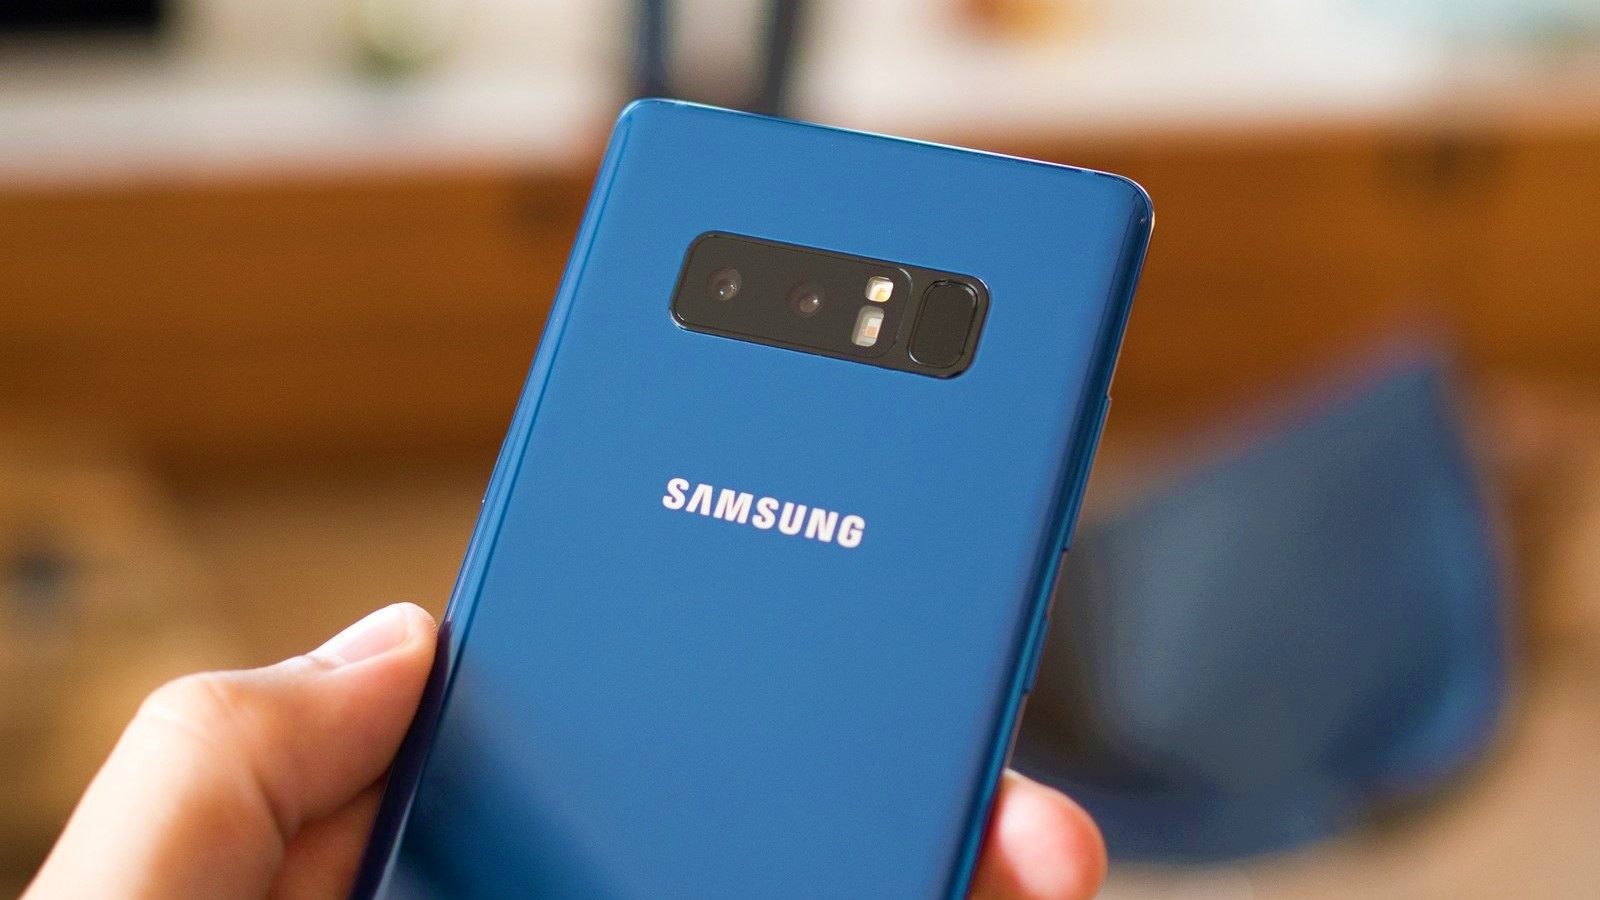 Samsung Galaxy Note 8 risponderà ad iPhone 8 ed iPhone X con il 4K a 60fps